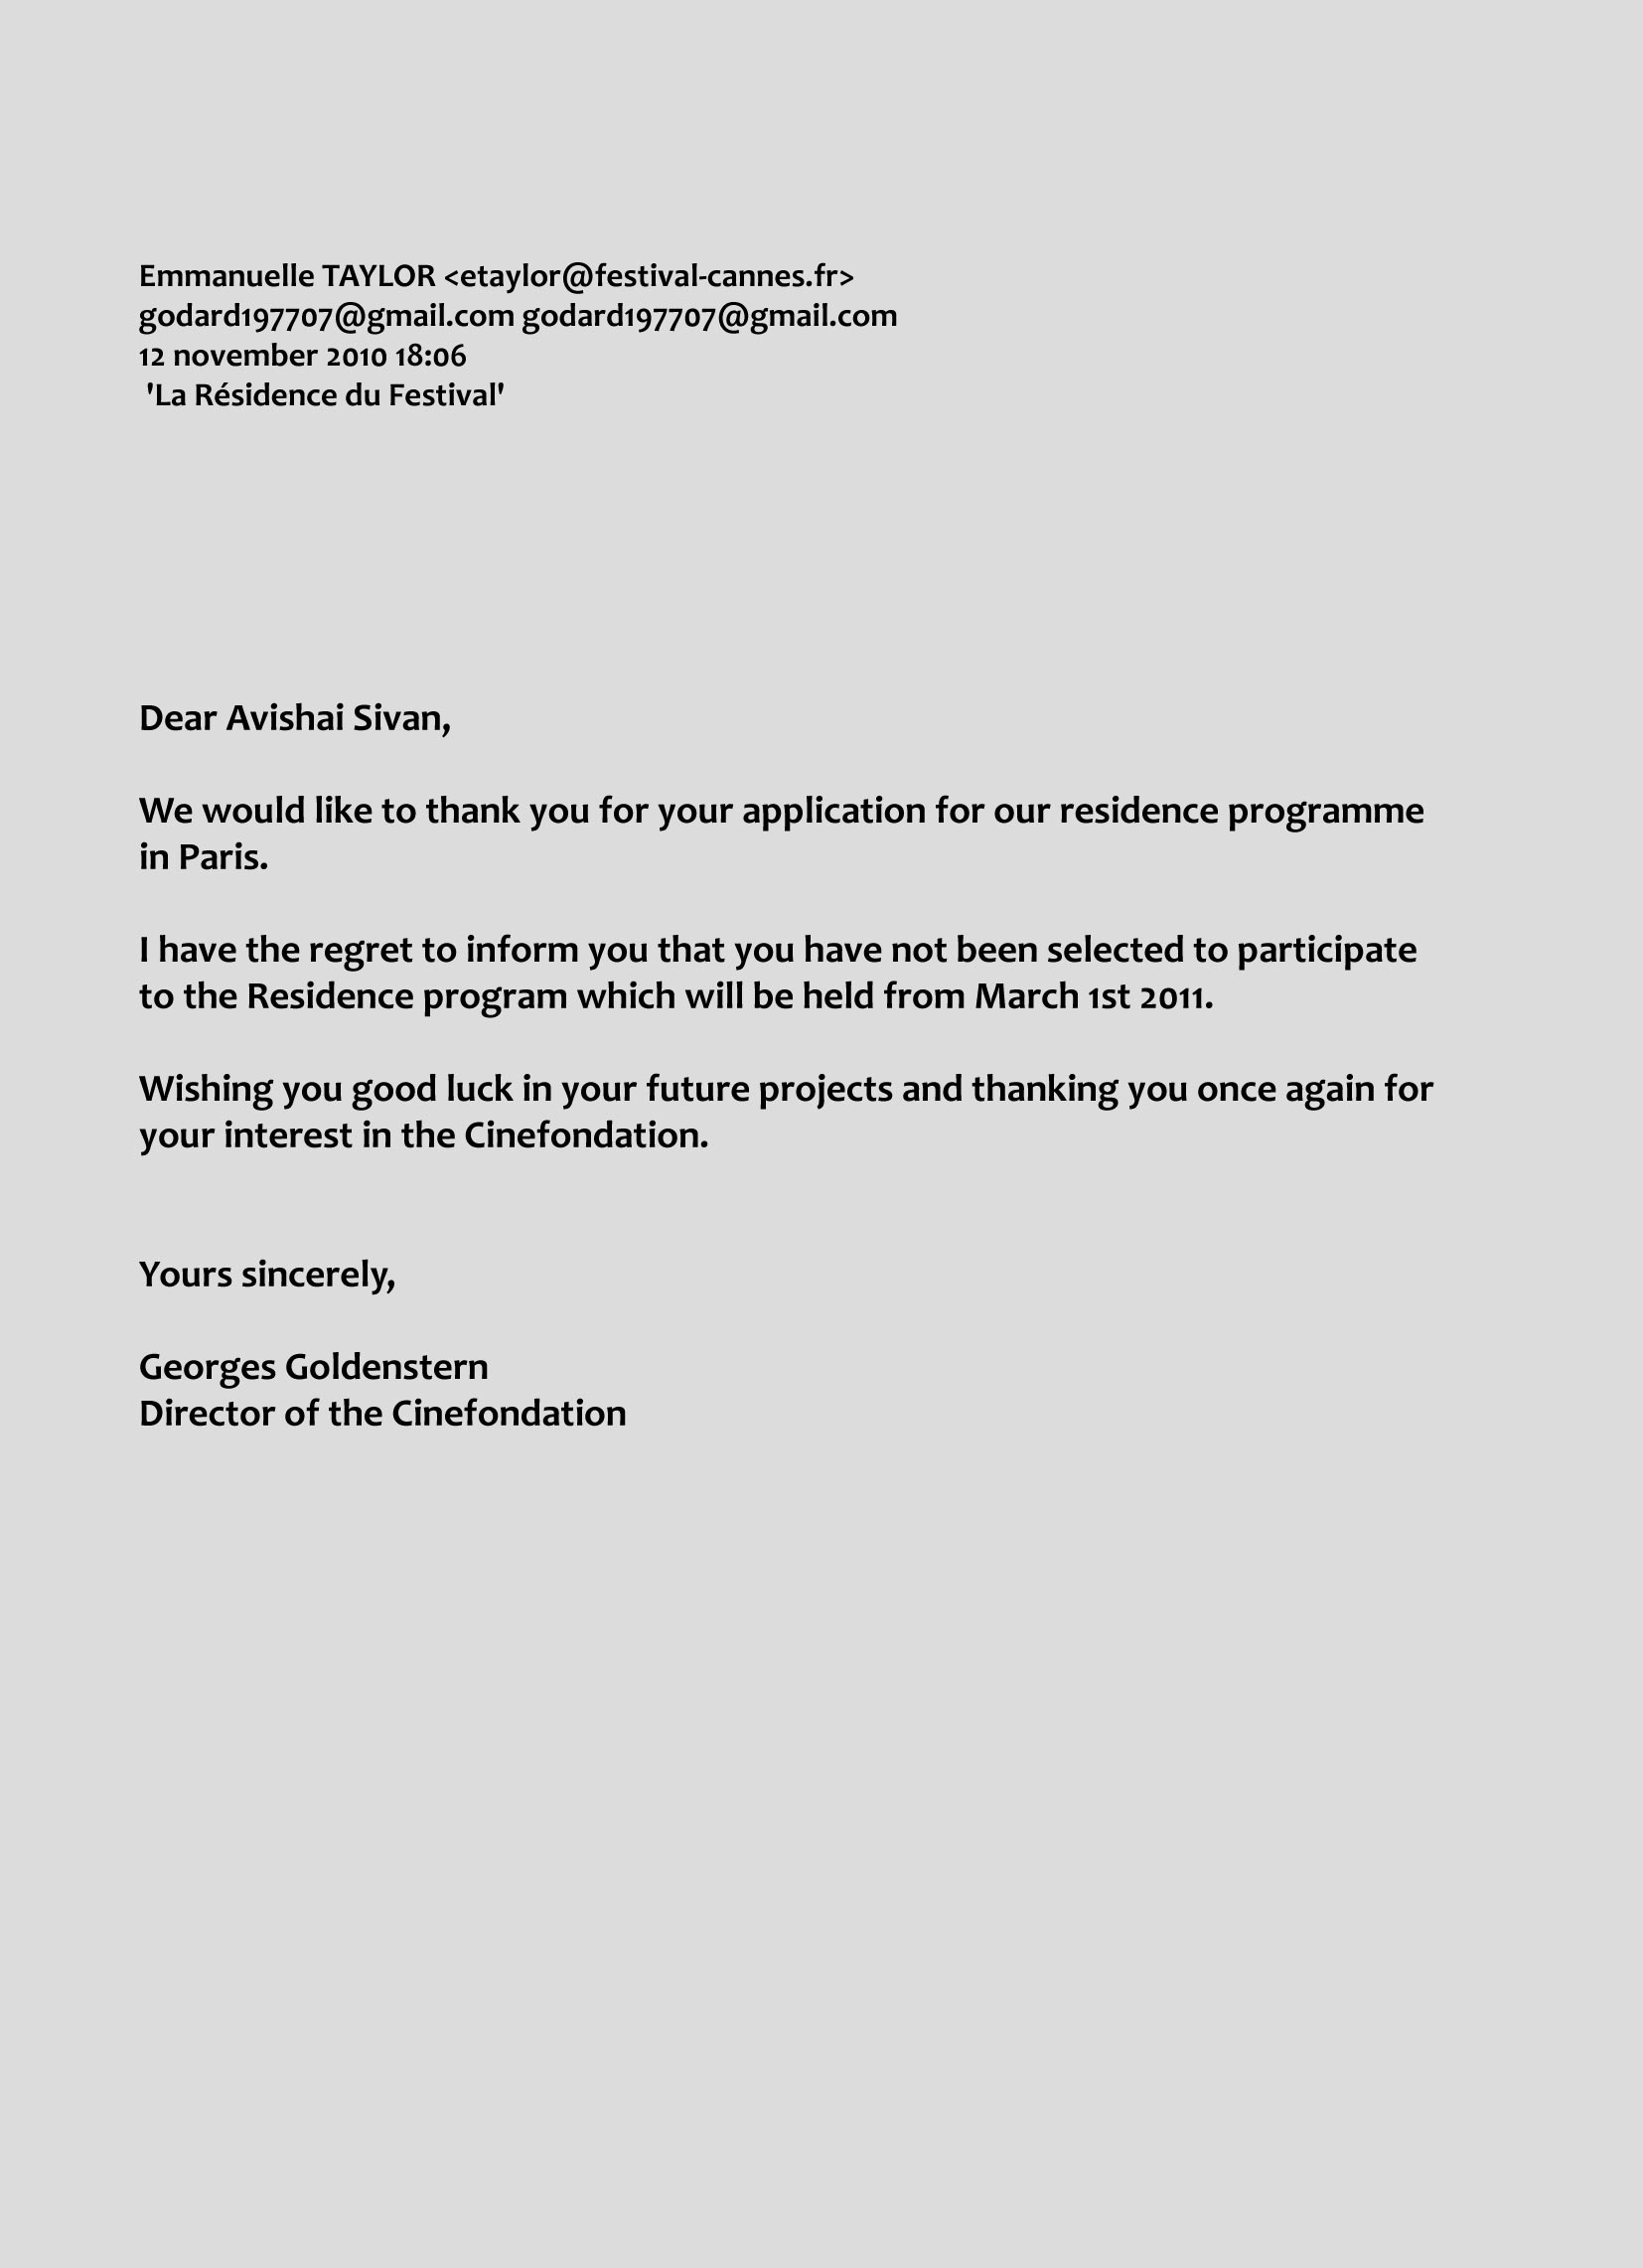 going back to work after maternity leave letter template - avishai sivan film making